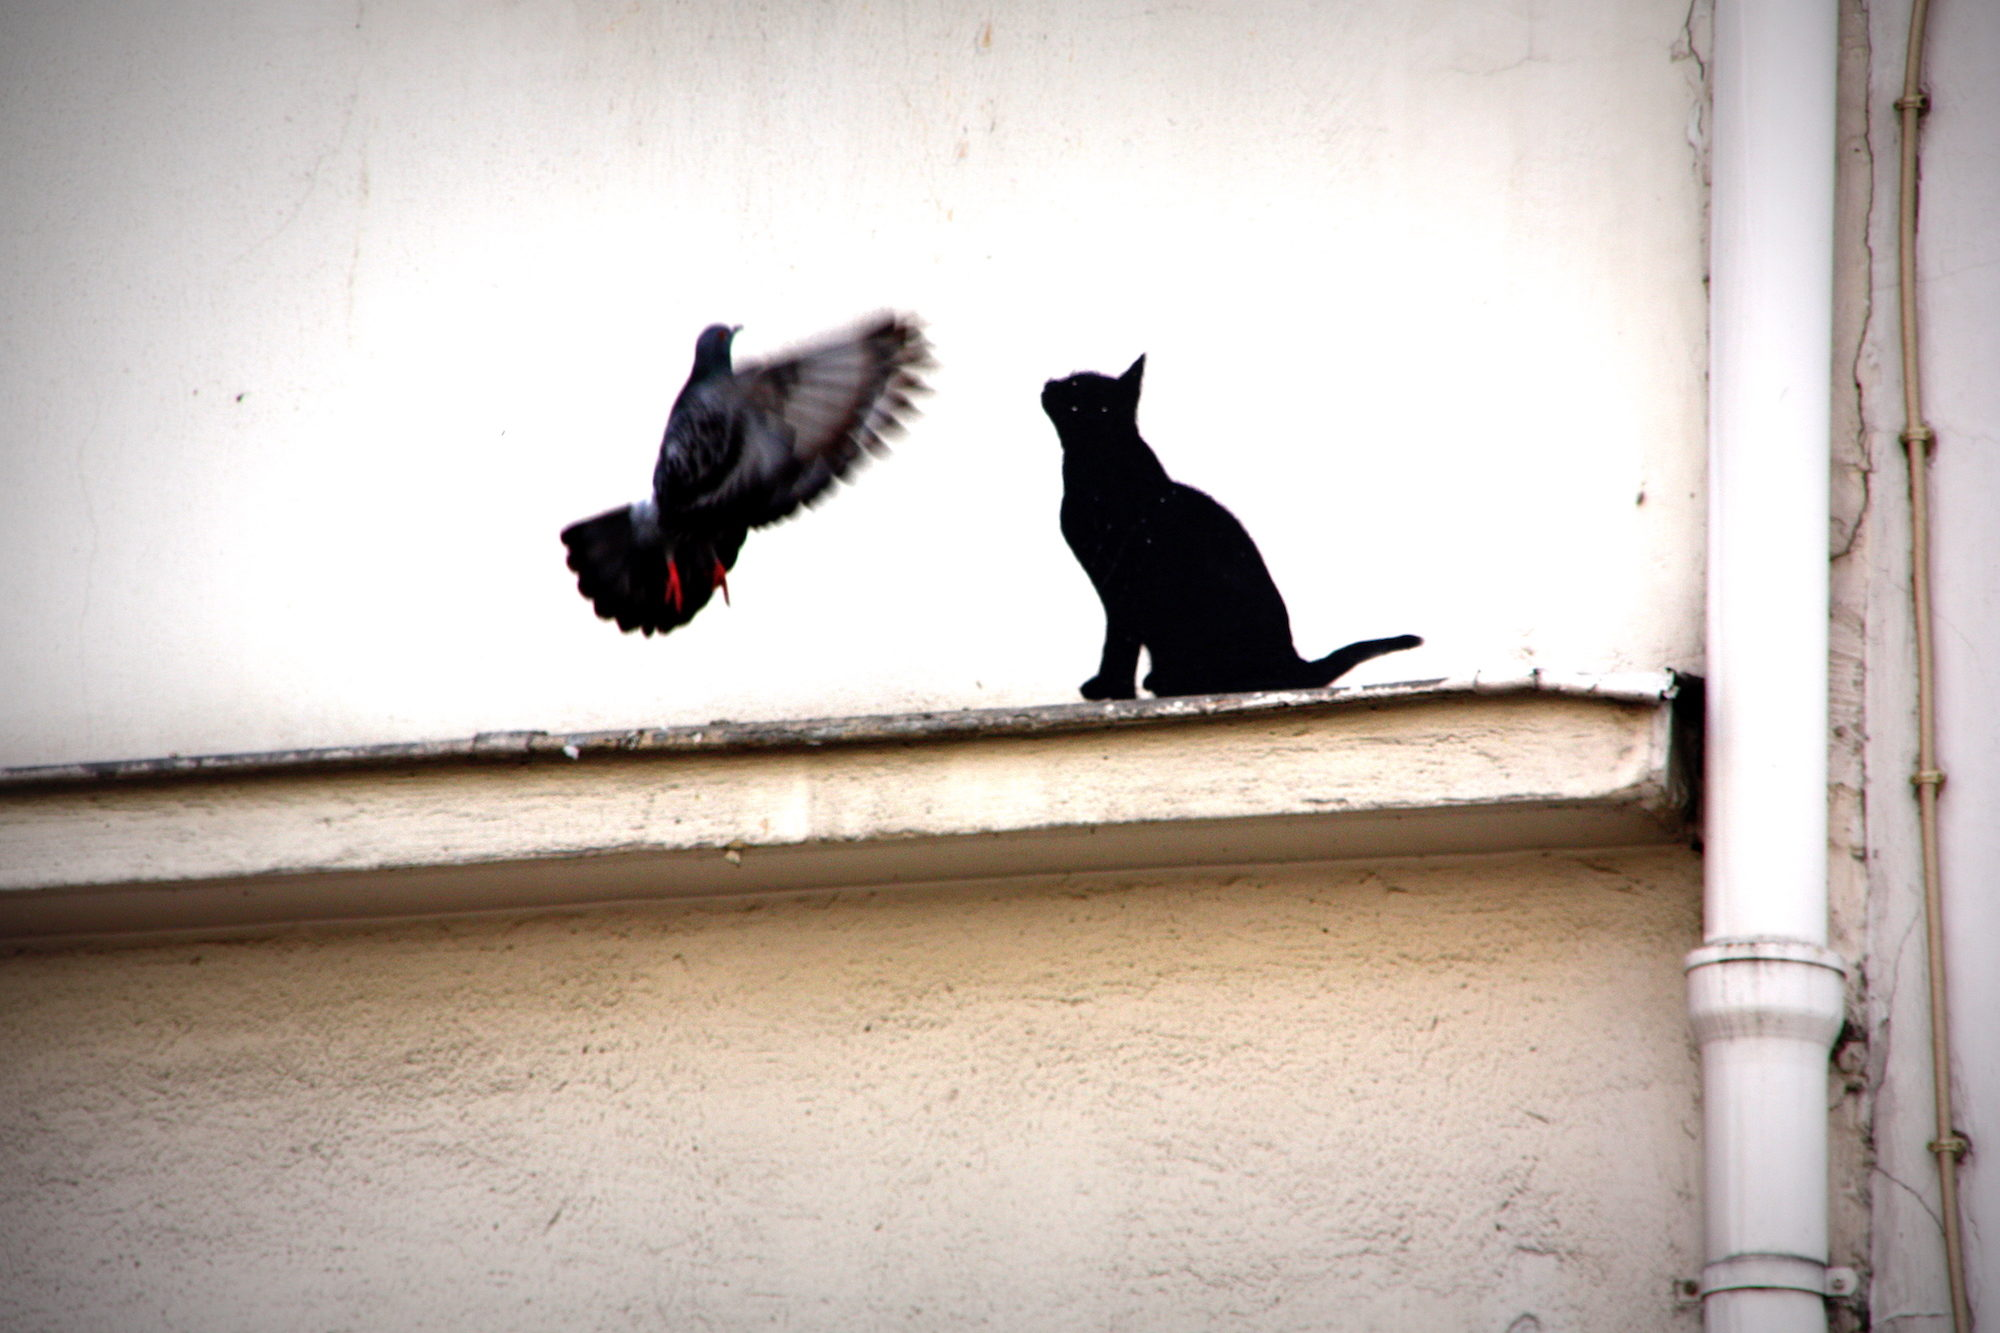 A black cat staring at a pigeon in panicked flight on a Paris rooftop.